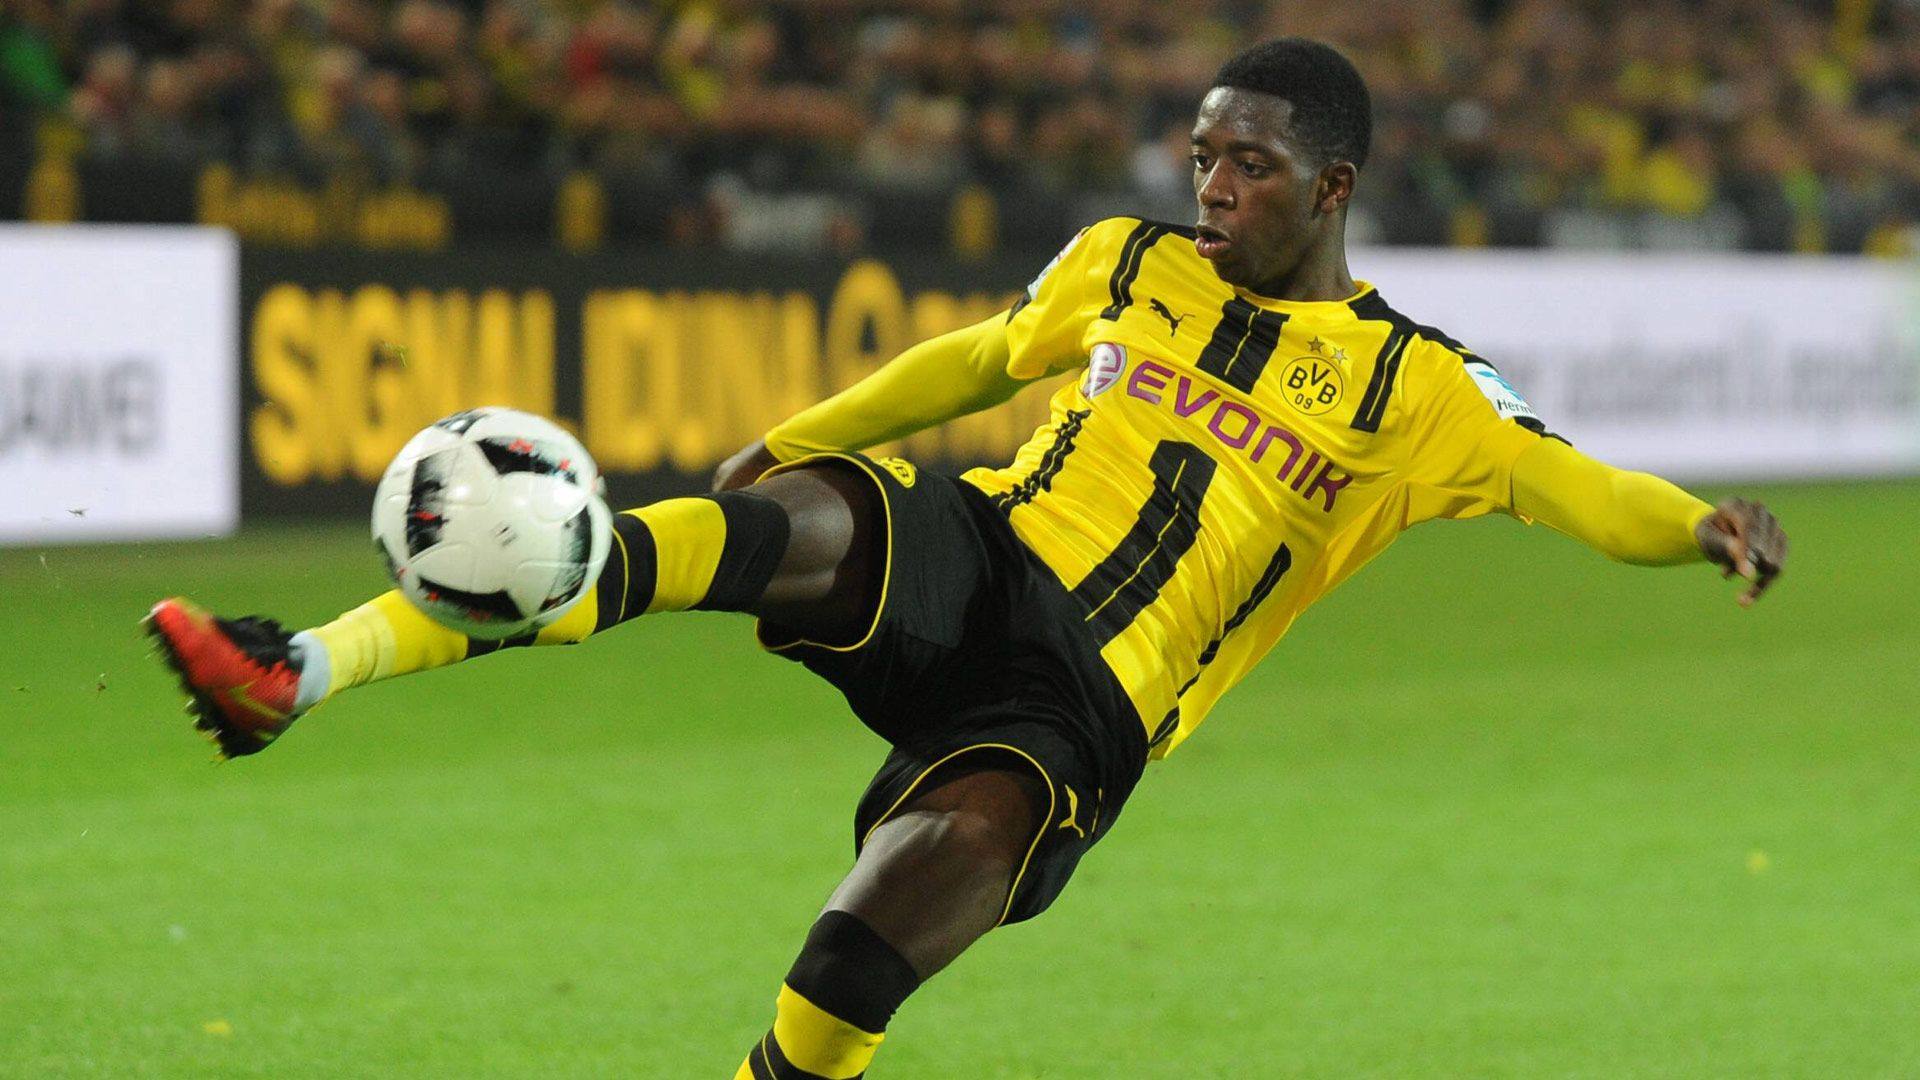 Barcelona Sign Ousmane Dembele for £97m - Newslibre